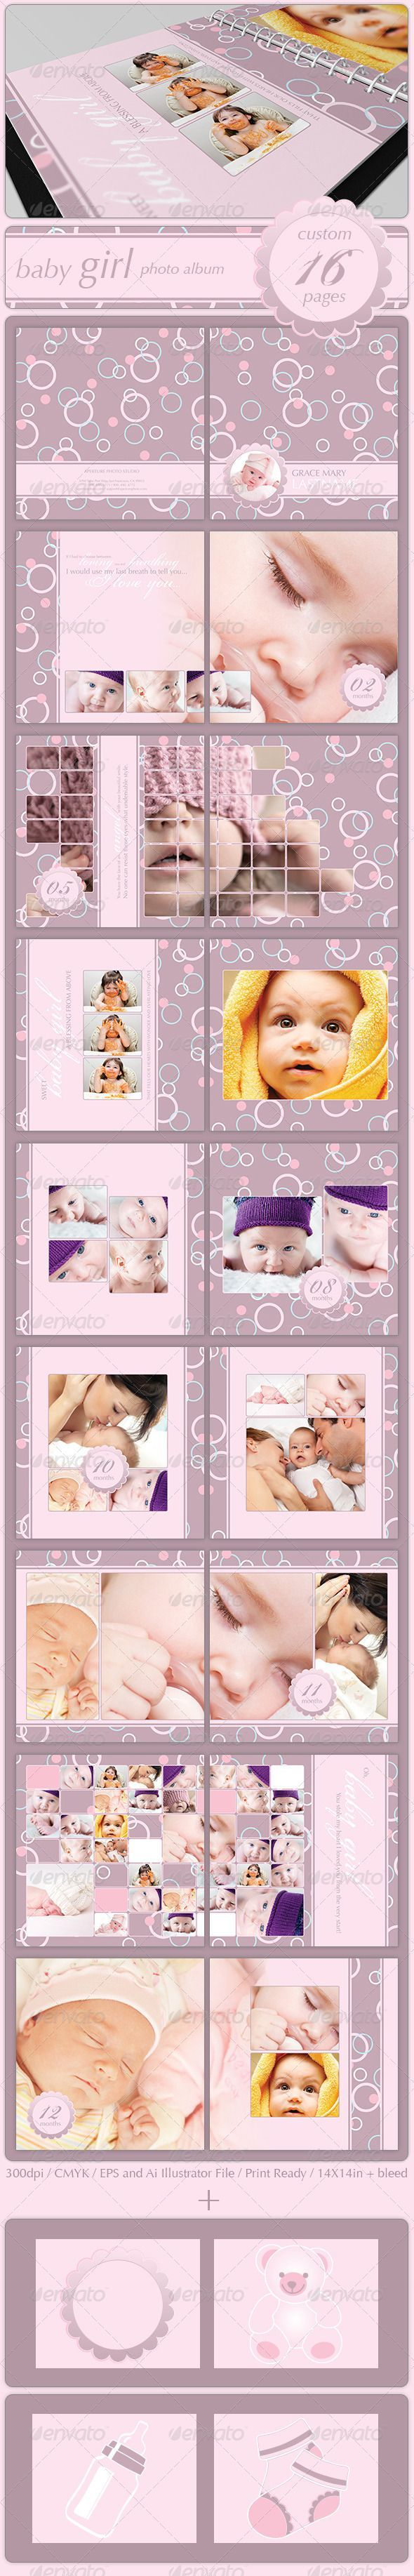 Baby Girl Photo Album This is a print ready 16 pages album. All pages are fully layered and all objects can be moved around that will allow you to create as many pages you like. I hope you will have a lot of fun playing around with this file.